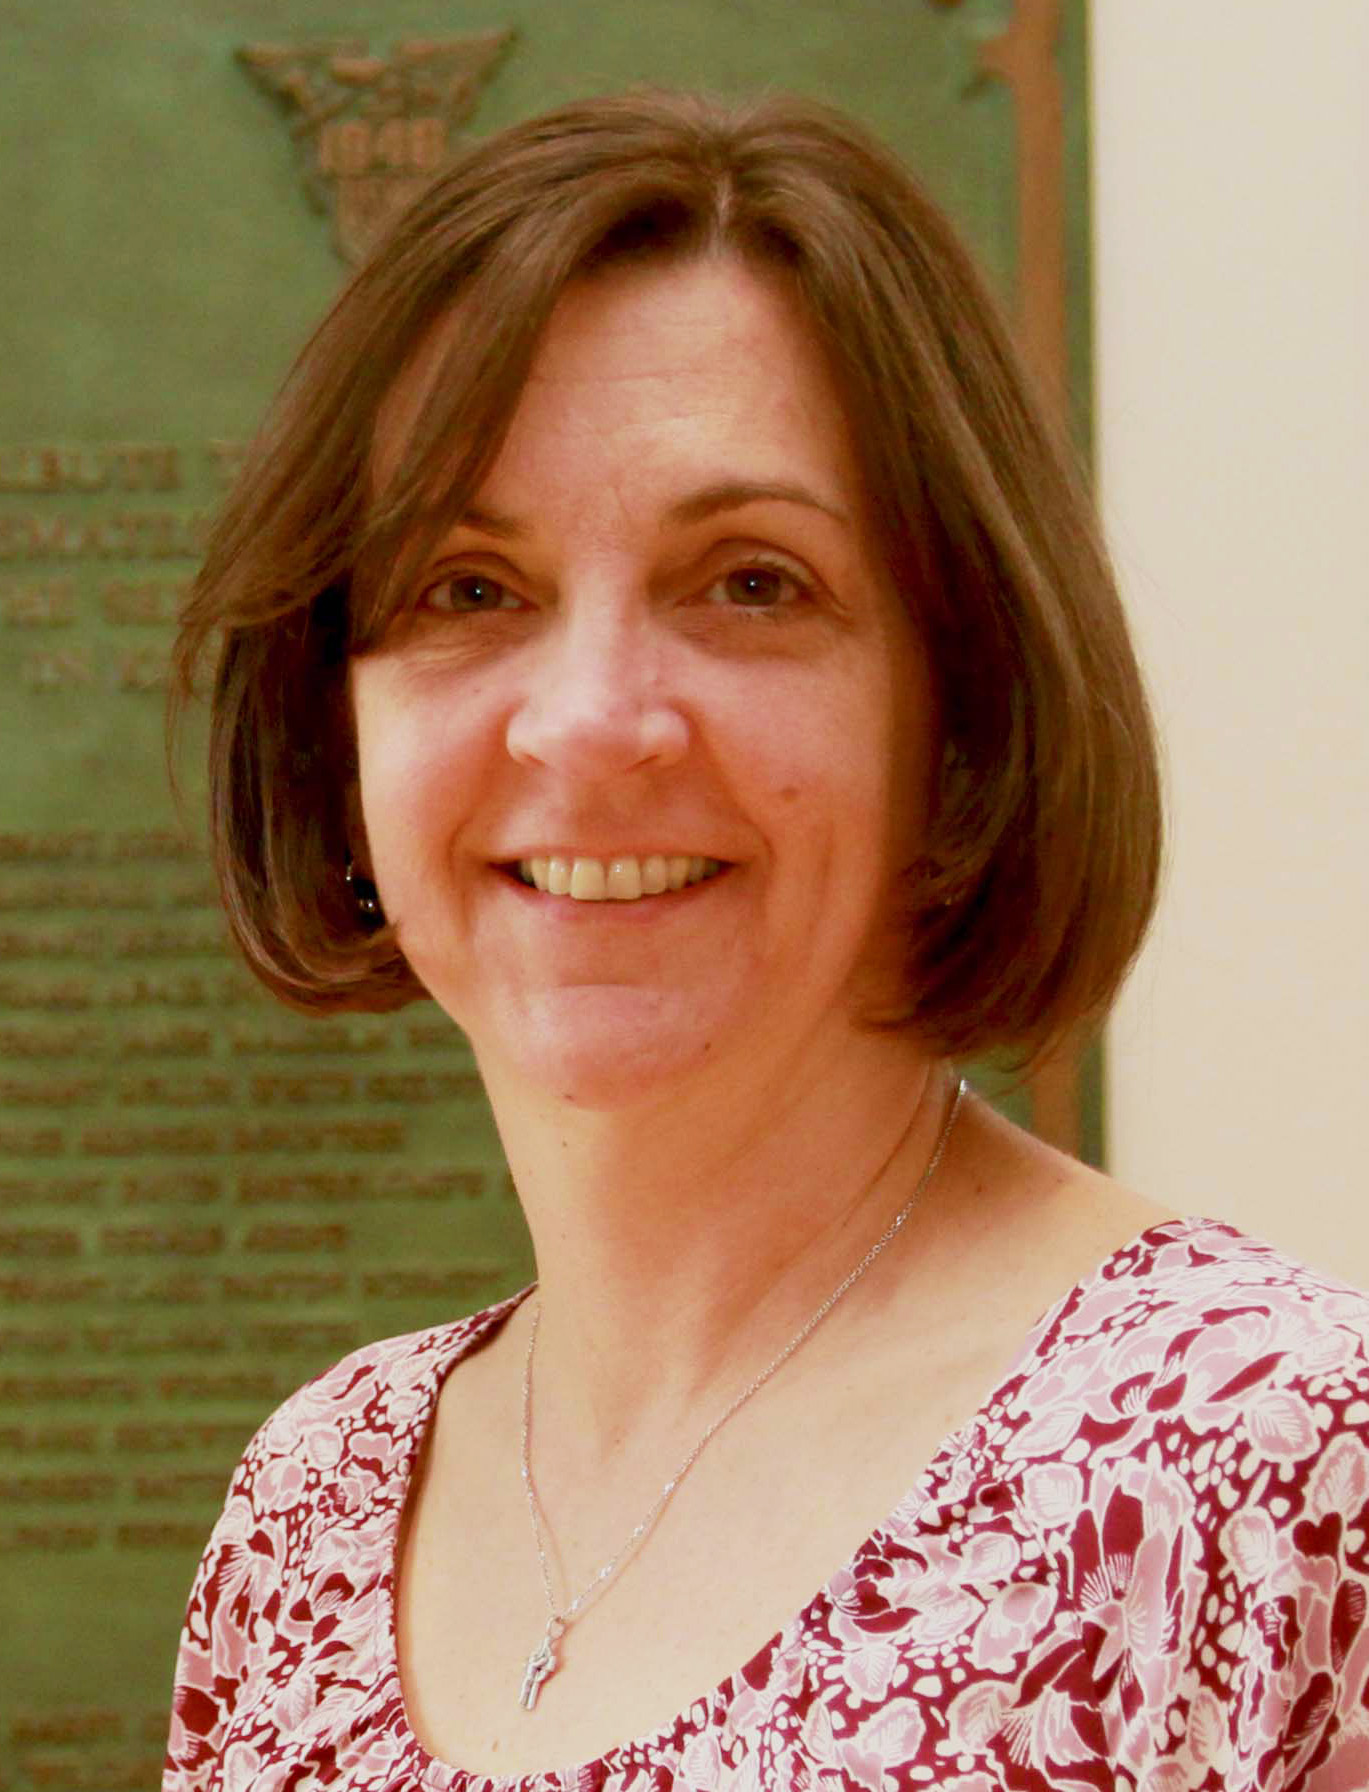 Kimberly A. McDermott '87